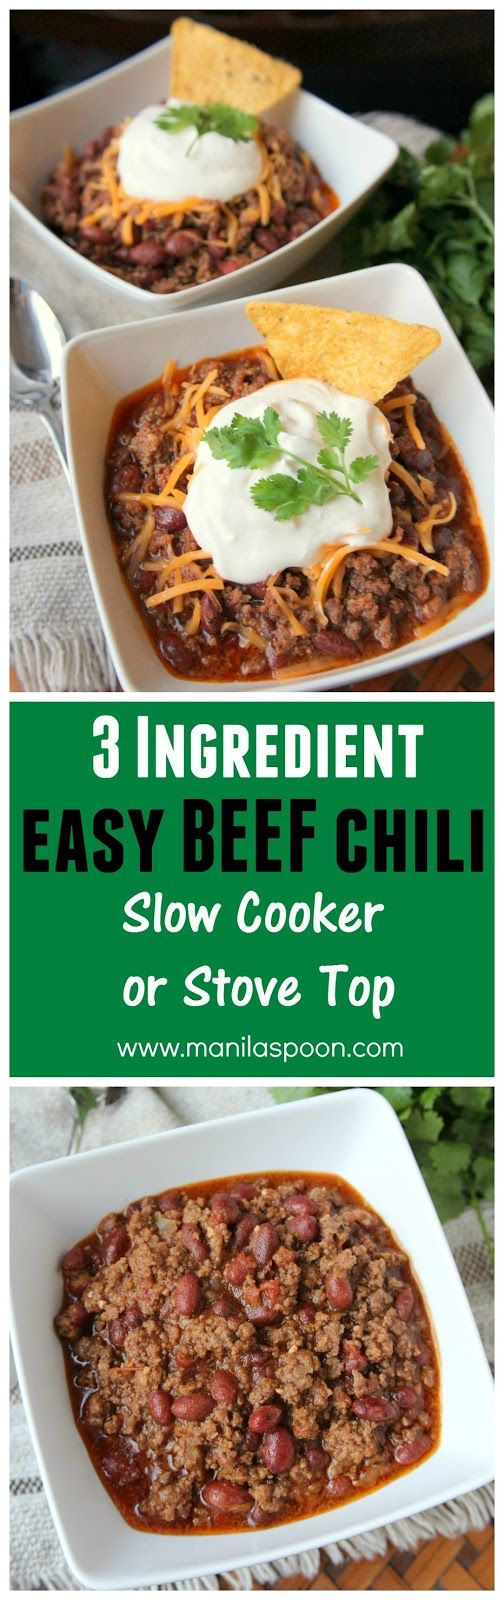 This easy and quick 3 Ingredient Chili can be made in the stove top or slow cooker. Yes, it's very TASTY and the whole family will love it! 3-INGREDIENT CHILI | manilaspoon.com